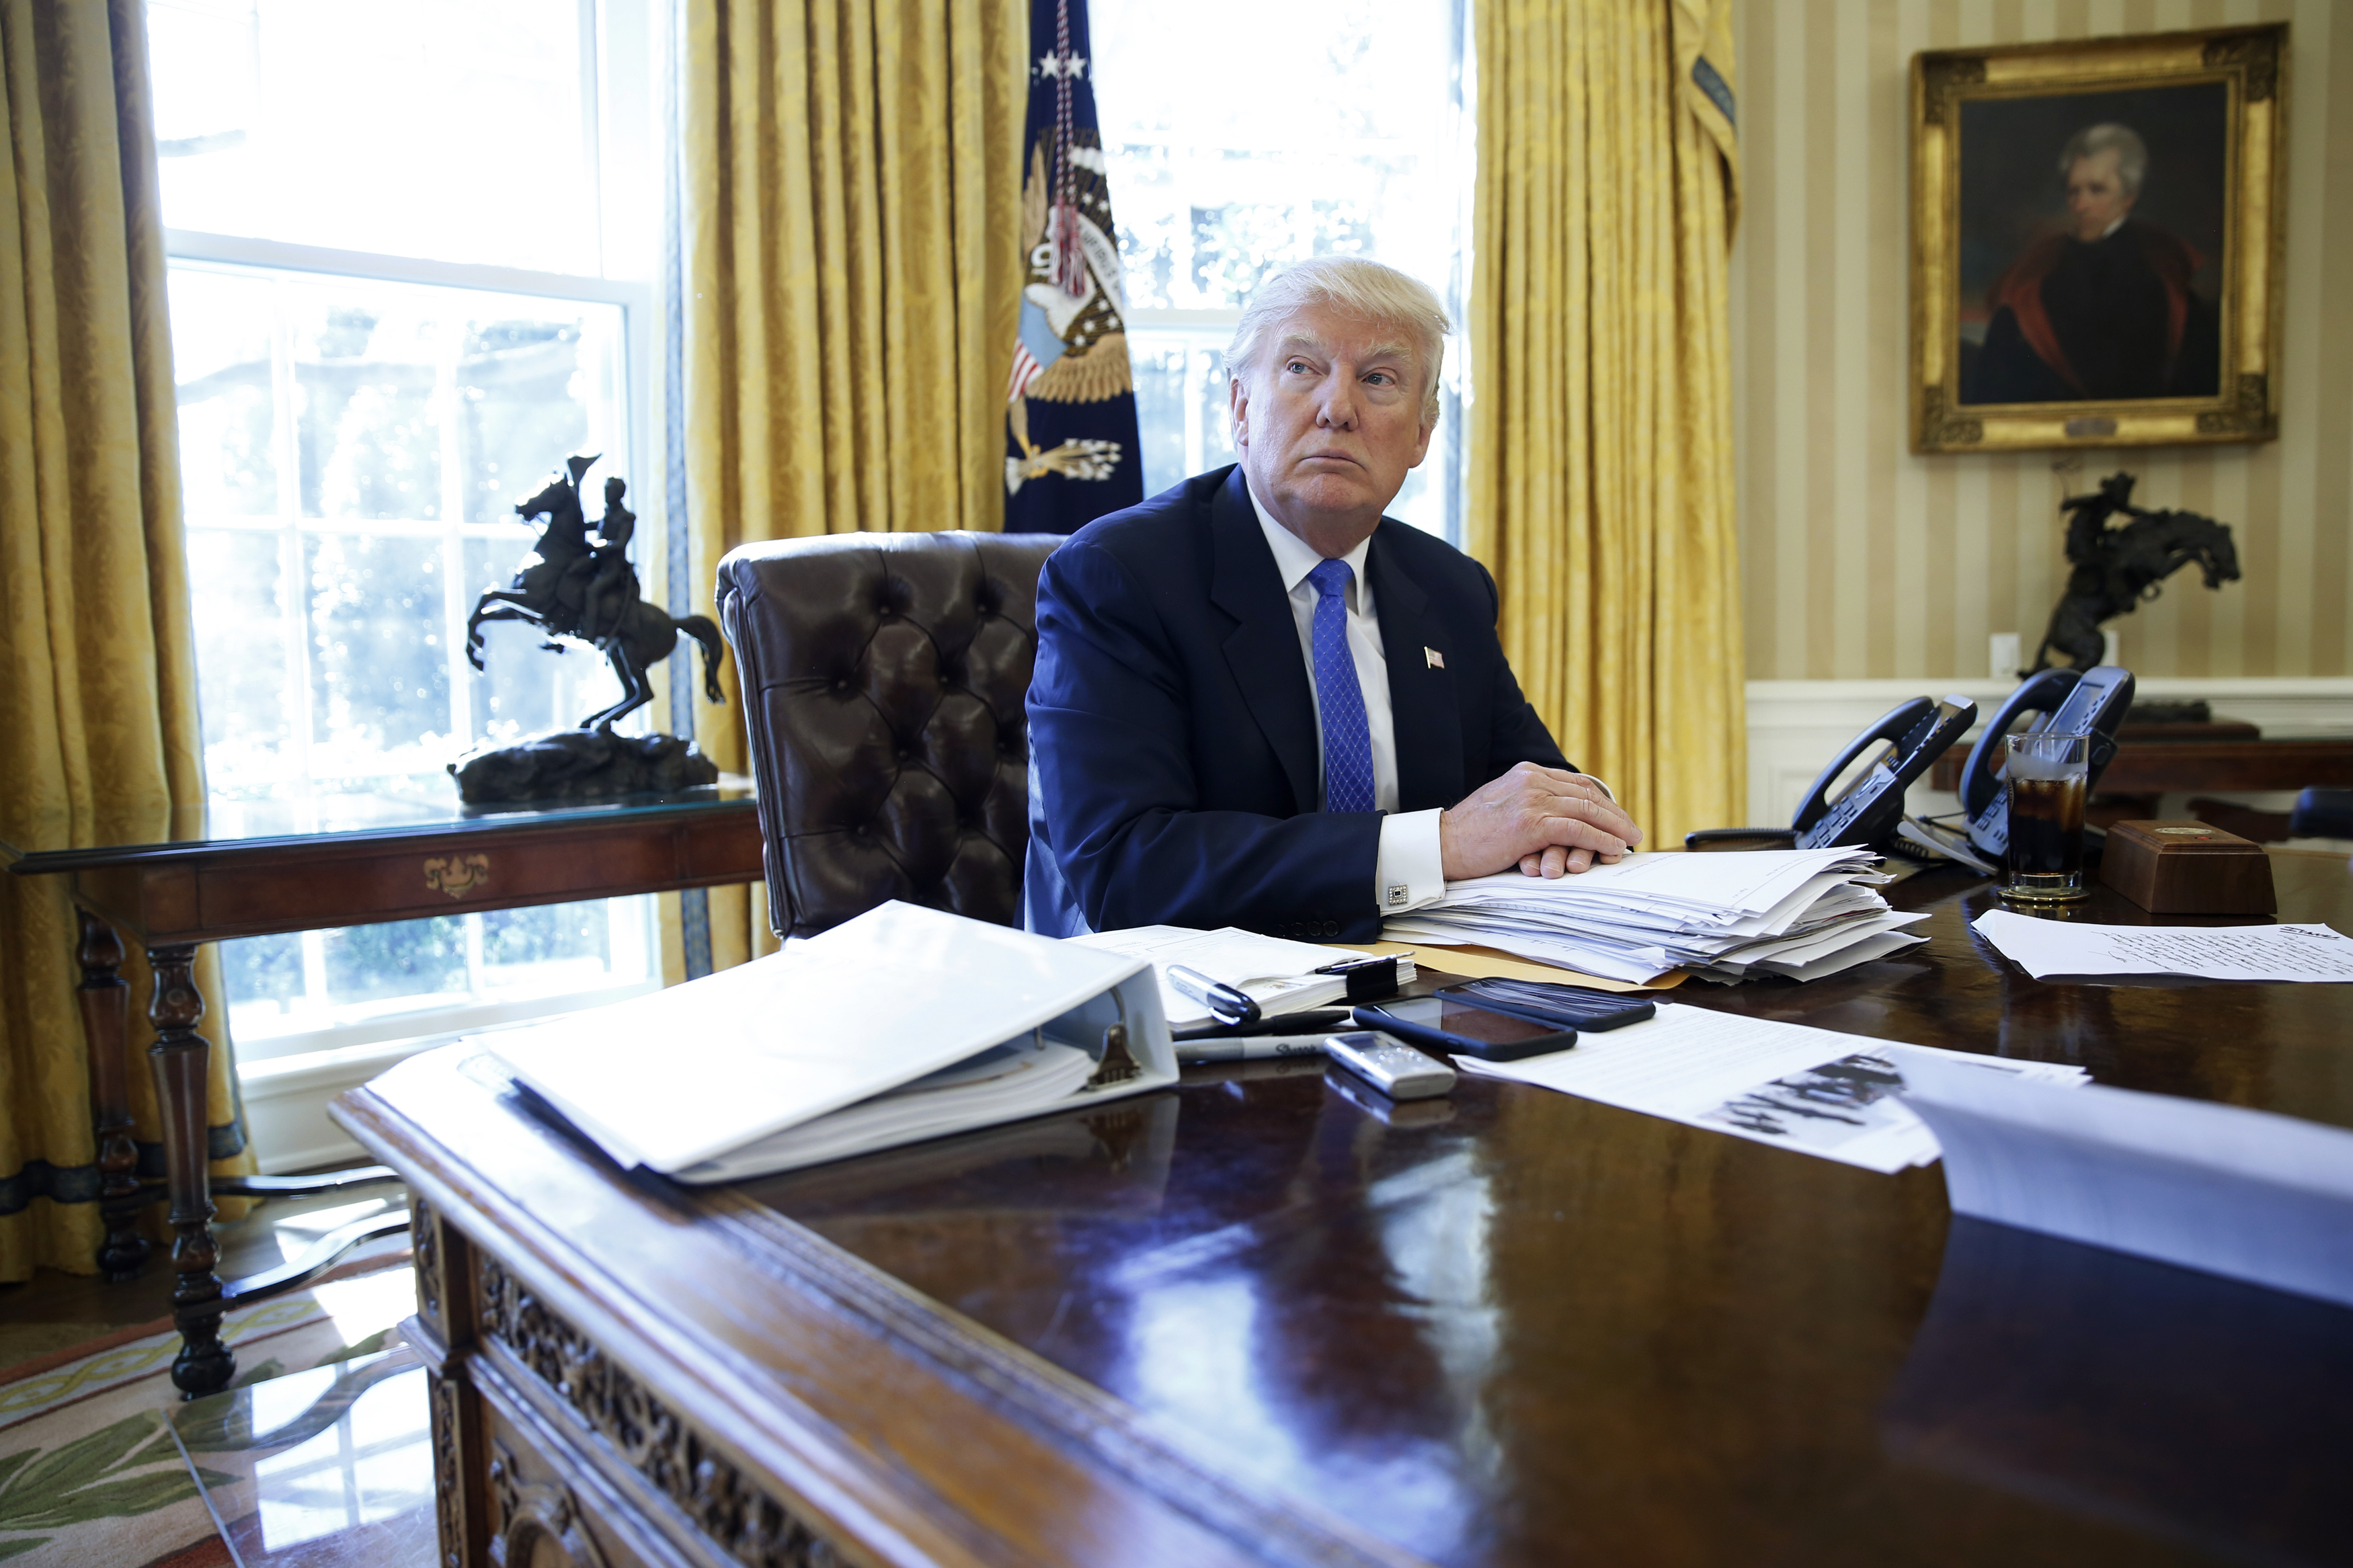 U.S. President Donald Trump is interviewed by Reuters in the Oval Office at the White House in Washington, U.S., February 23, 2017.